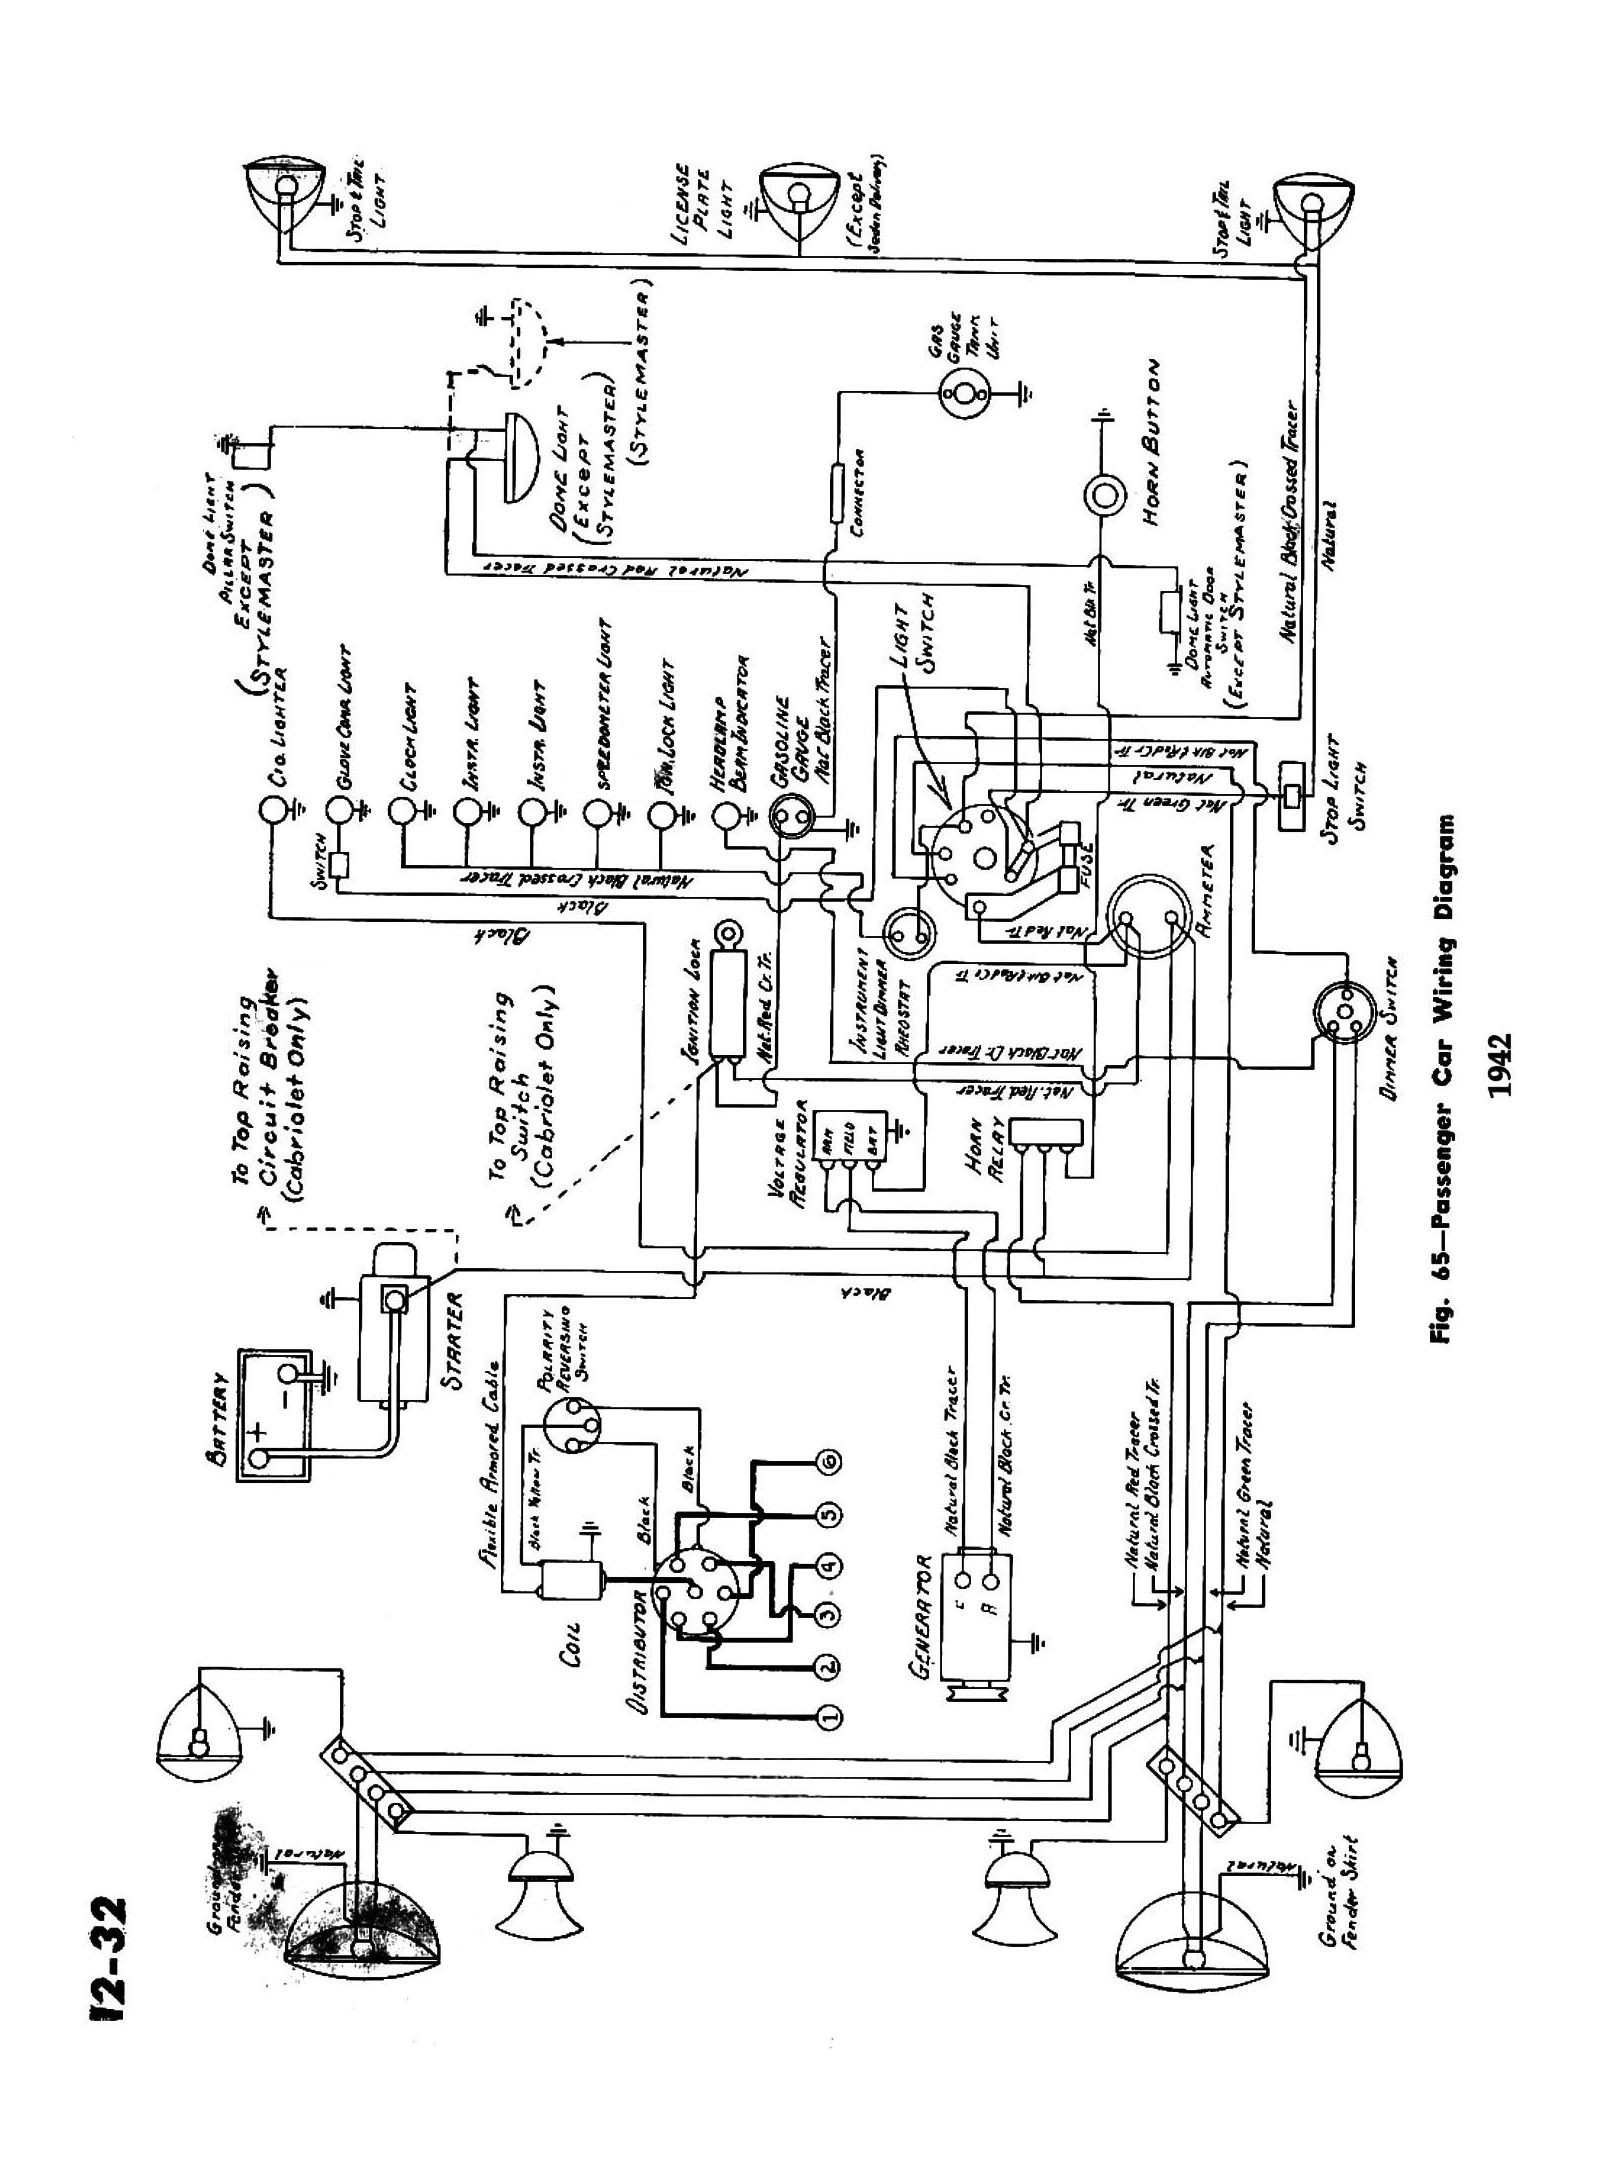 42csm1232a 1950 chevy truck wiring harness on 1950 download wirning diagrams chevy truck wiring harness at fashall.co